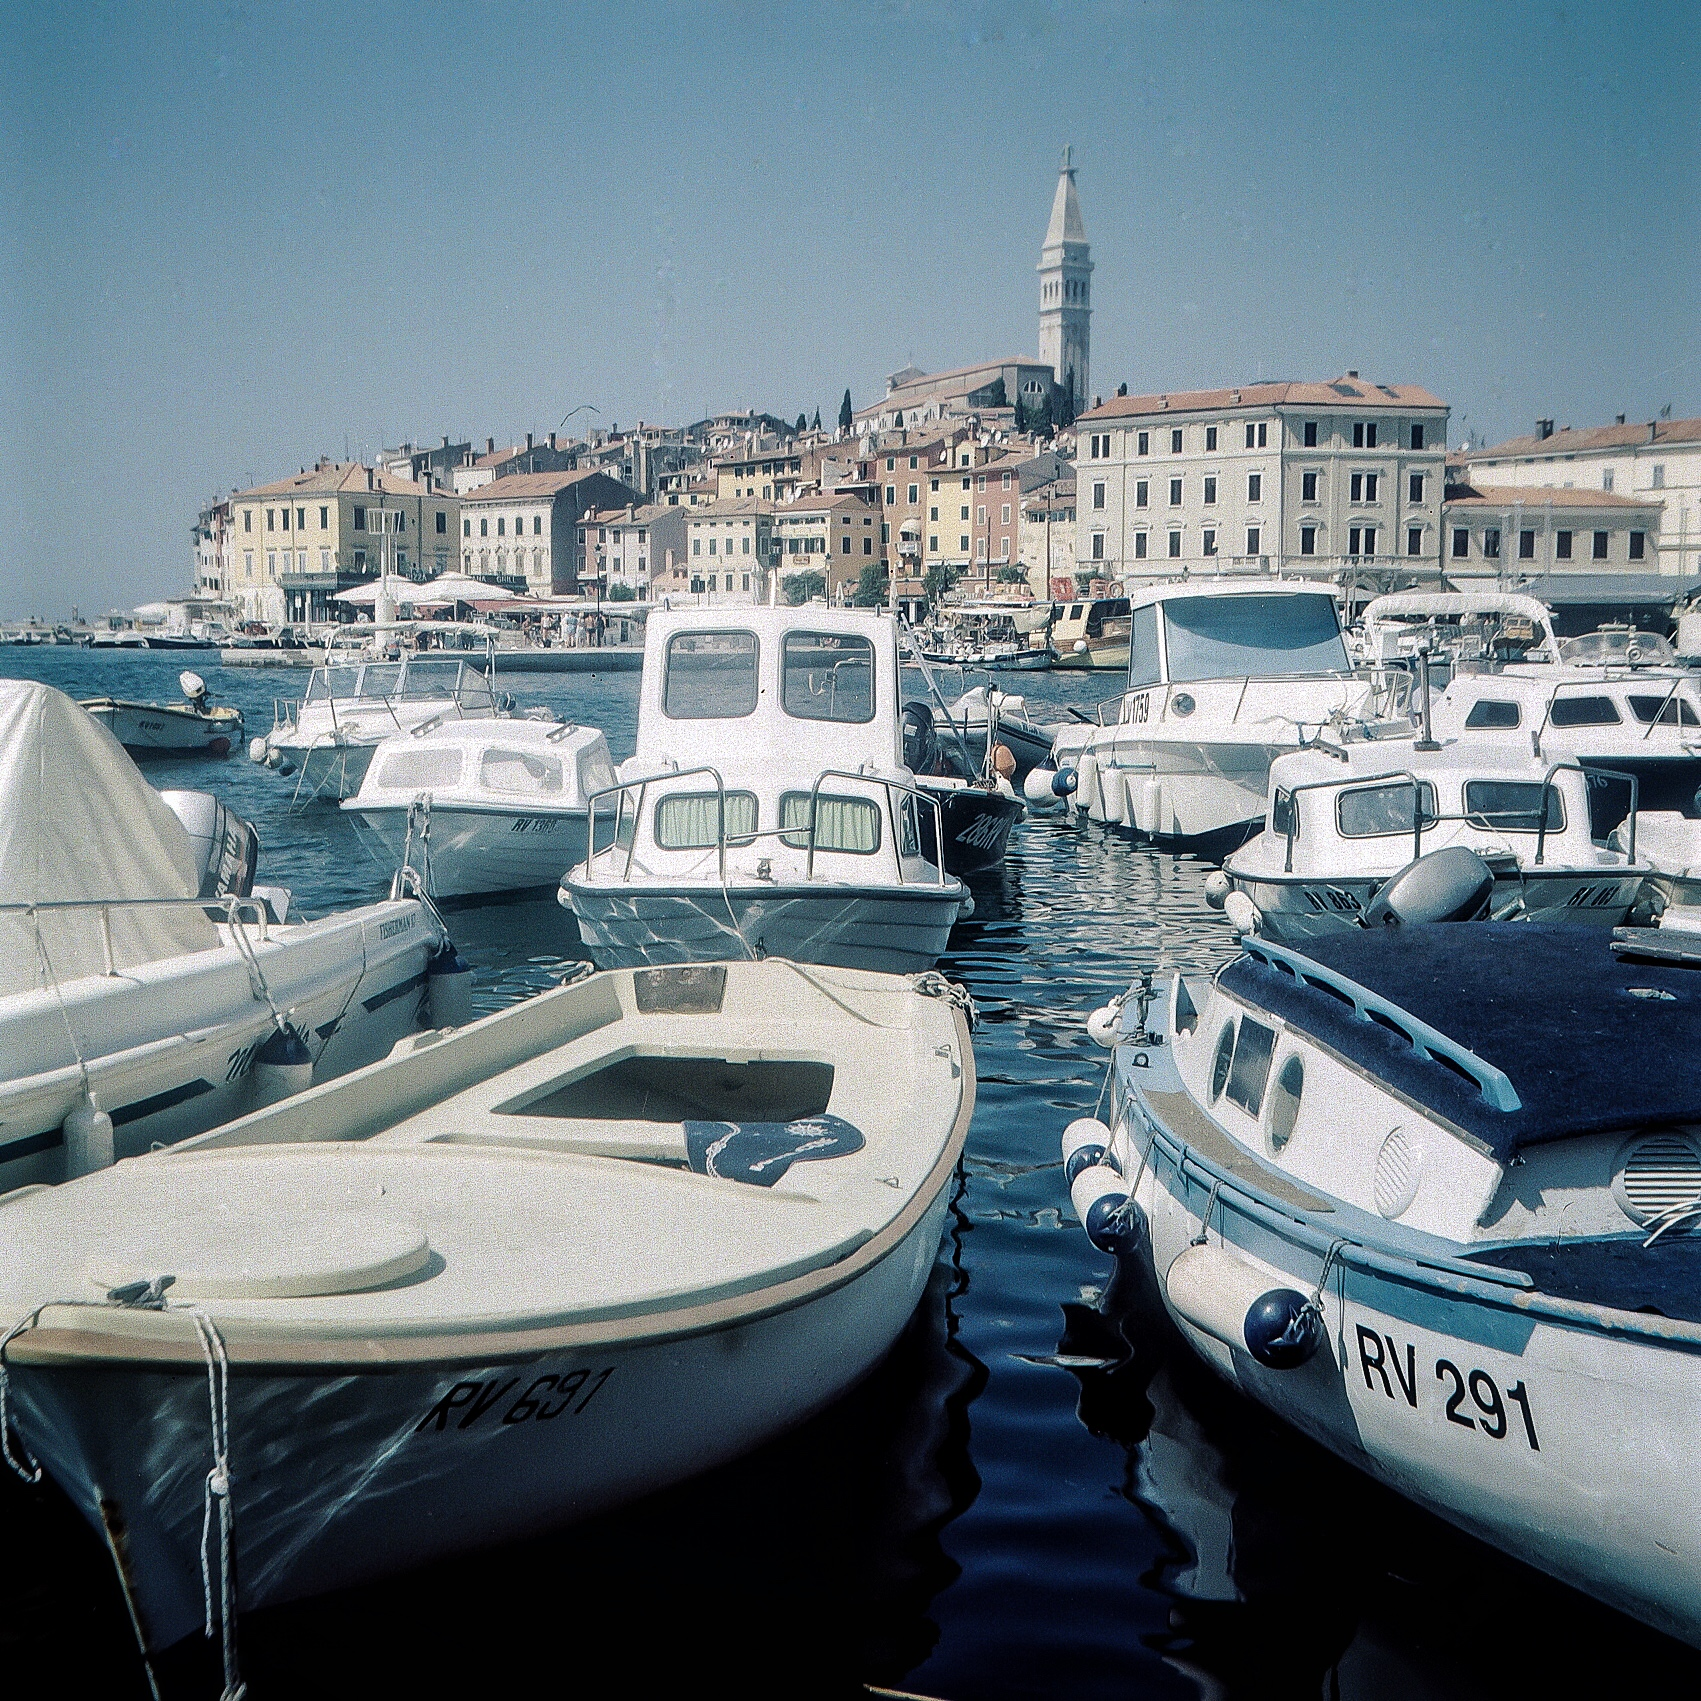 Shot in good light at a small aperture, edge sharpness is vastly improved. Rovinj, Croatia.